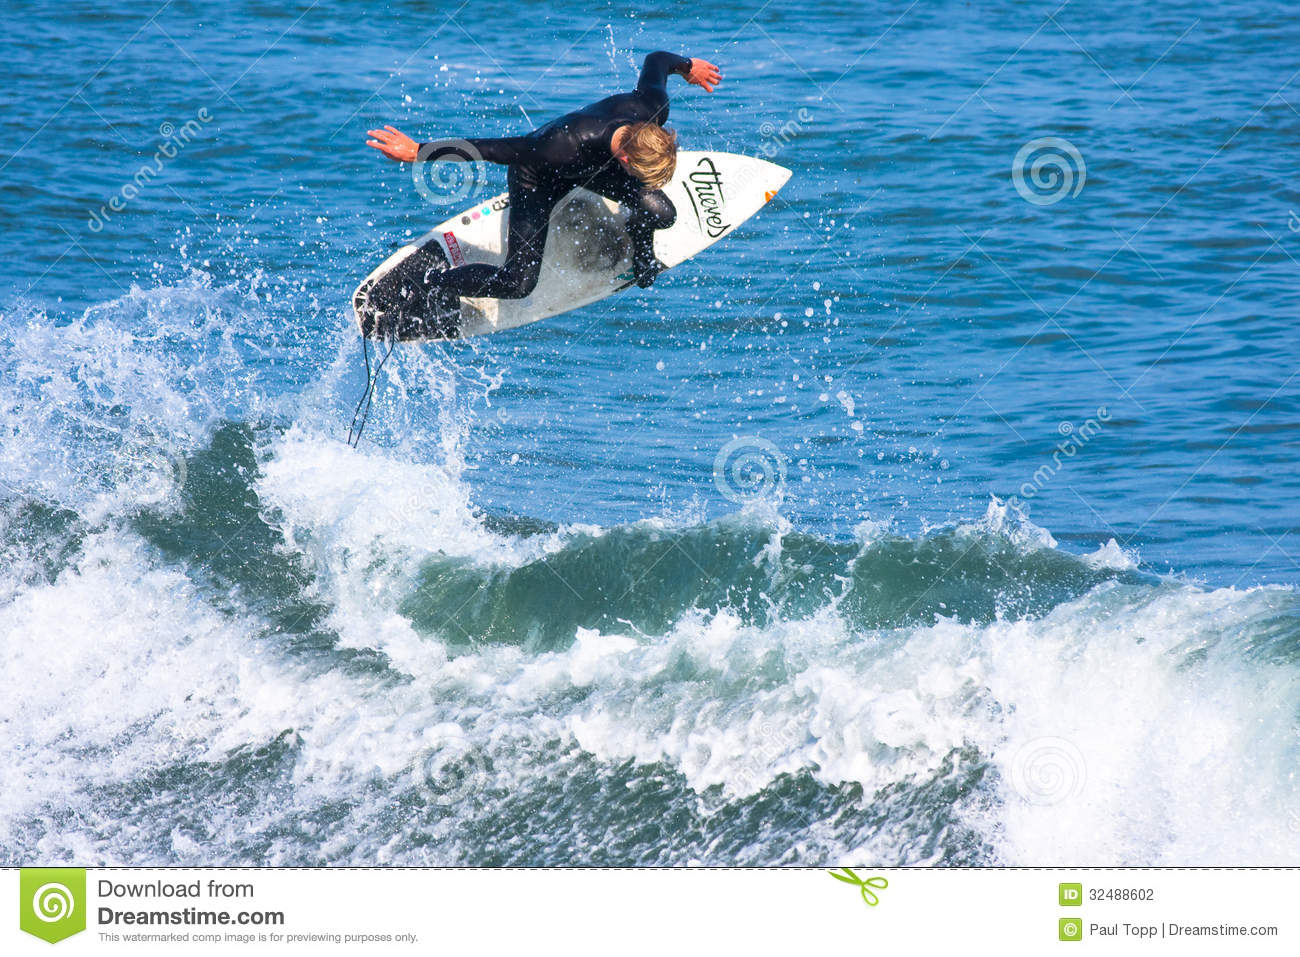 Persona que practica surf profesional Willie Eagleton Surfing California